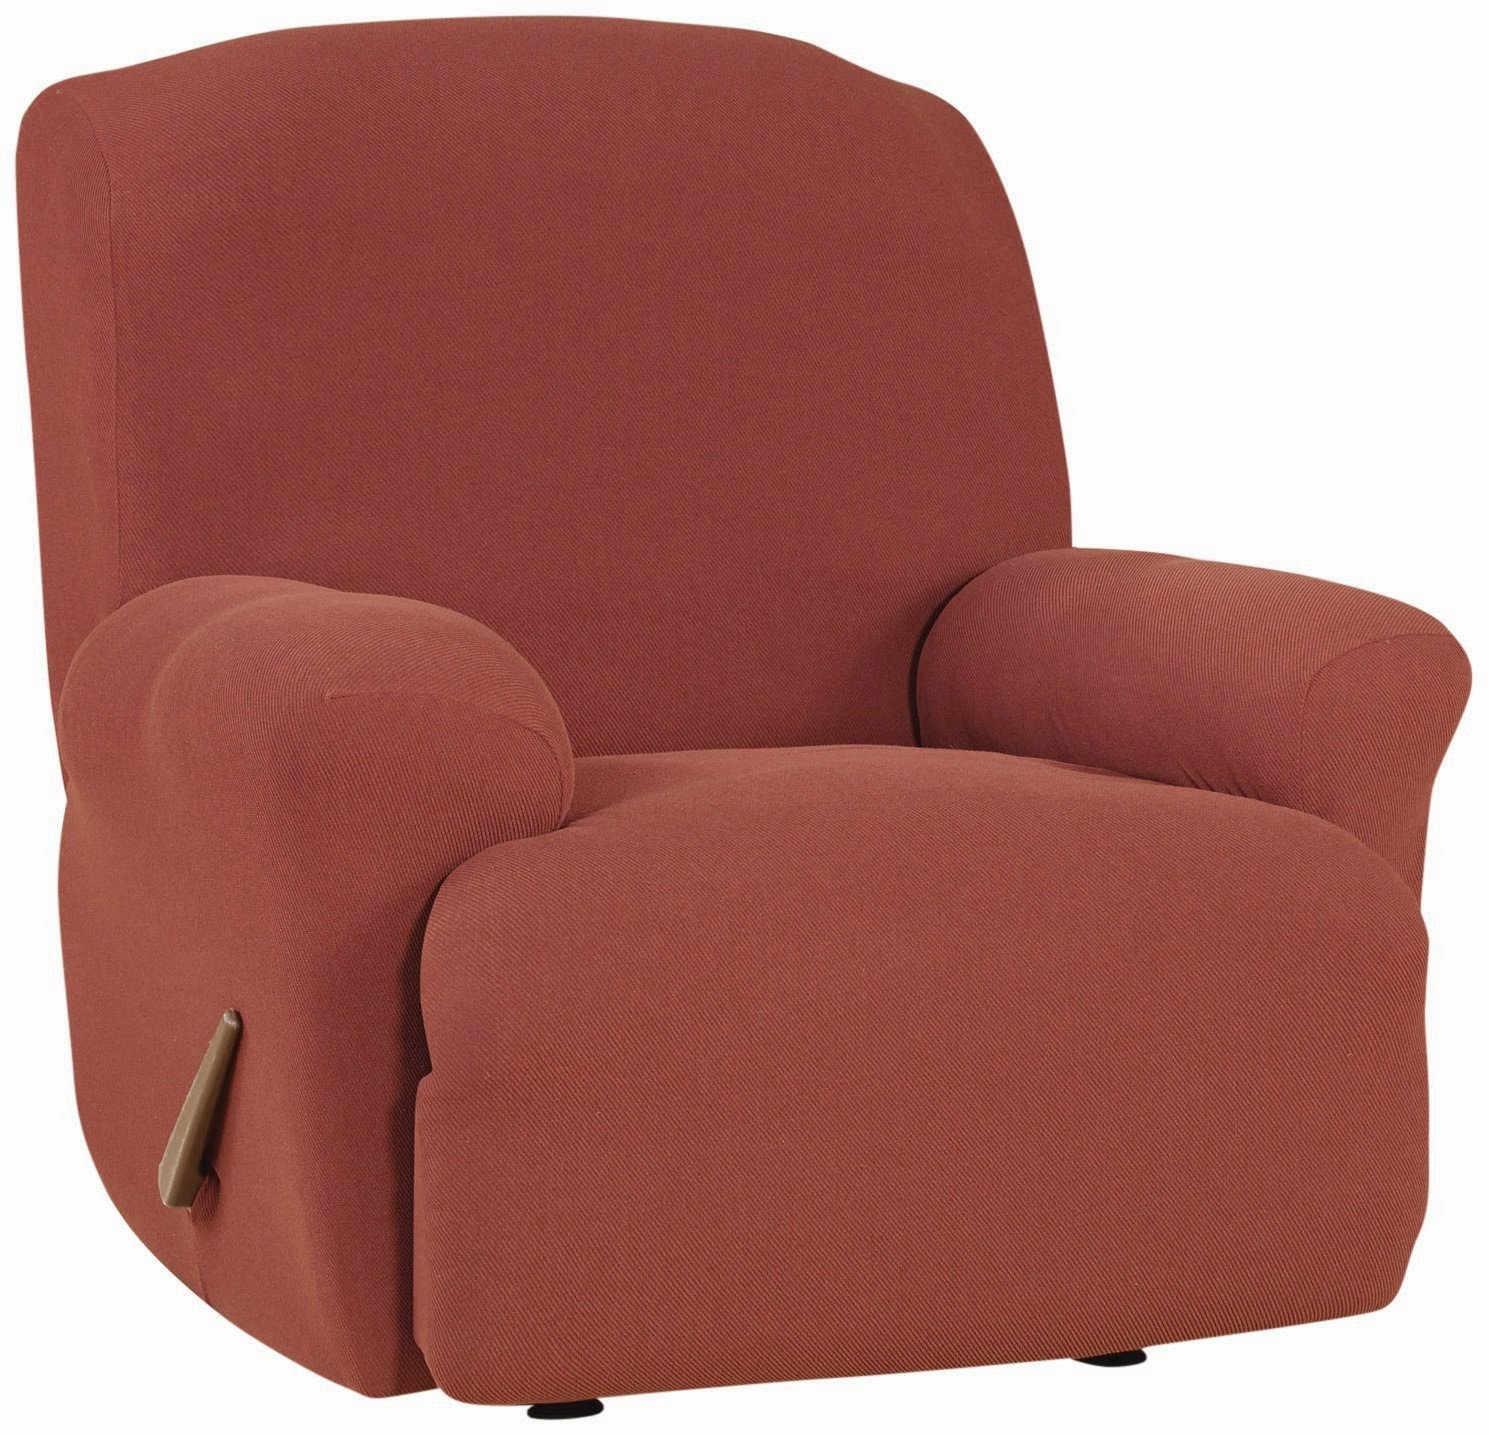 Sure Fit Paprika Recliner Sofa Slipcovers Walmart